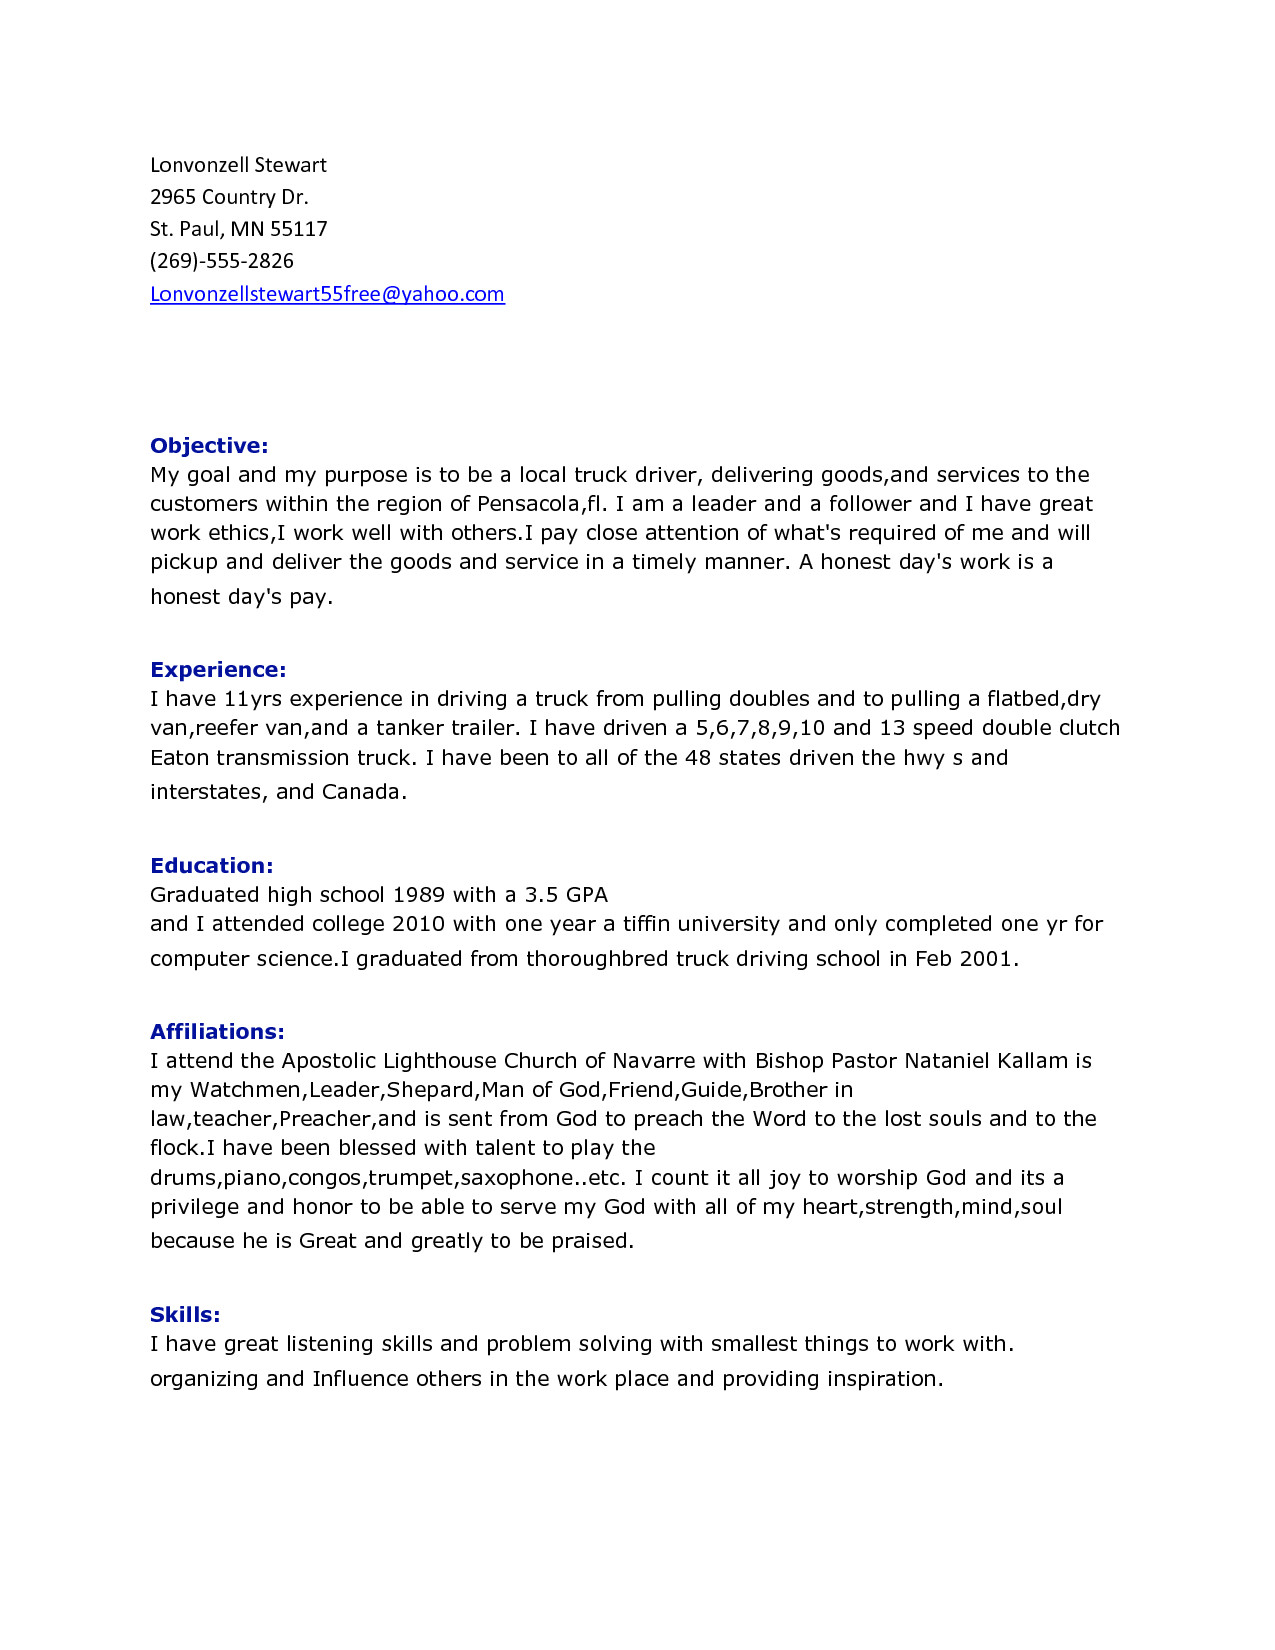 Resume Samples for Truck Drivers with An Objective Truck Driver Resume Best Template Collection